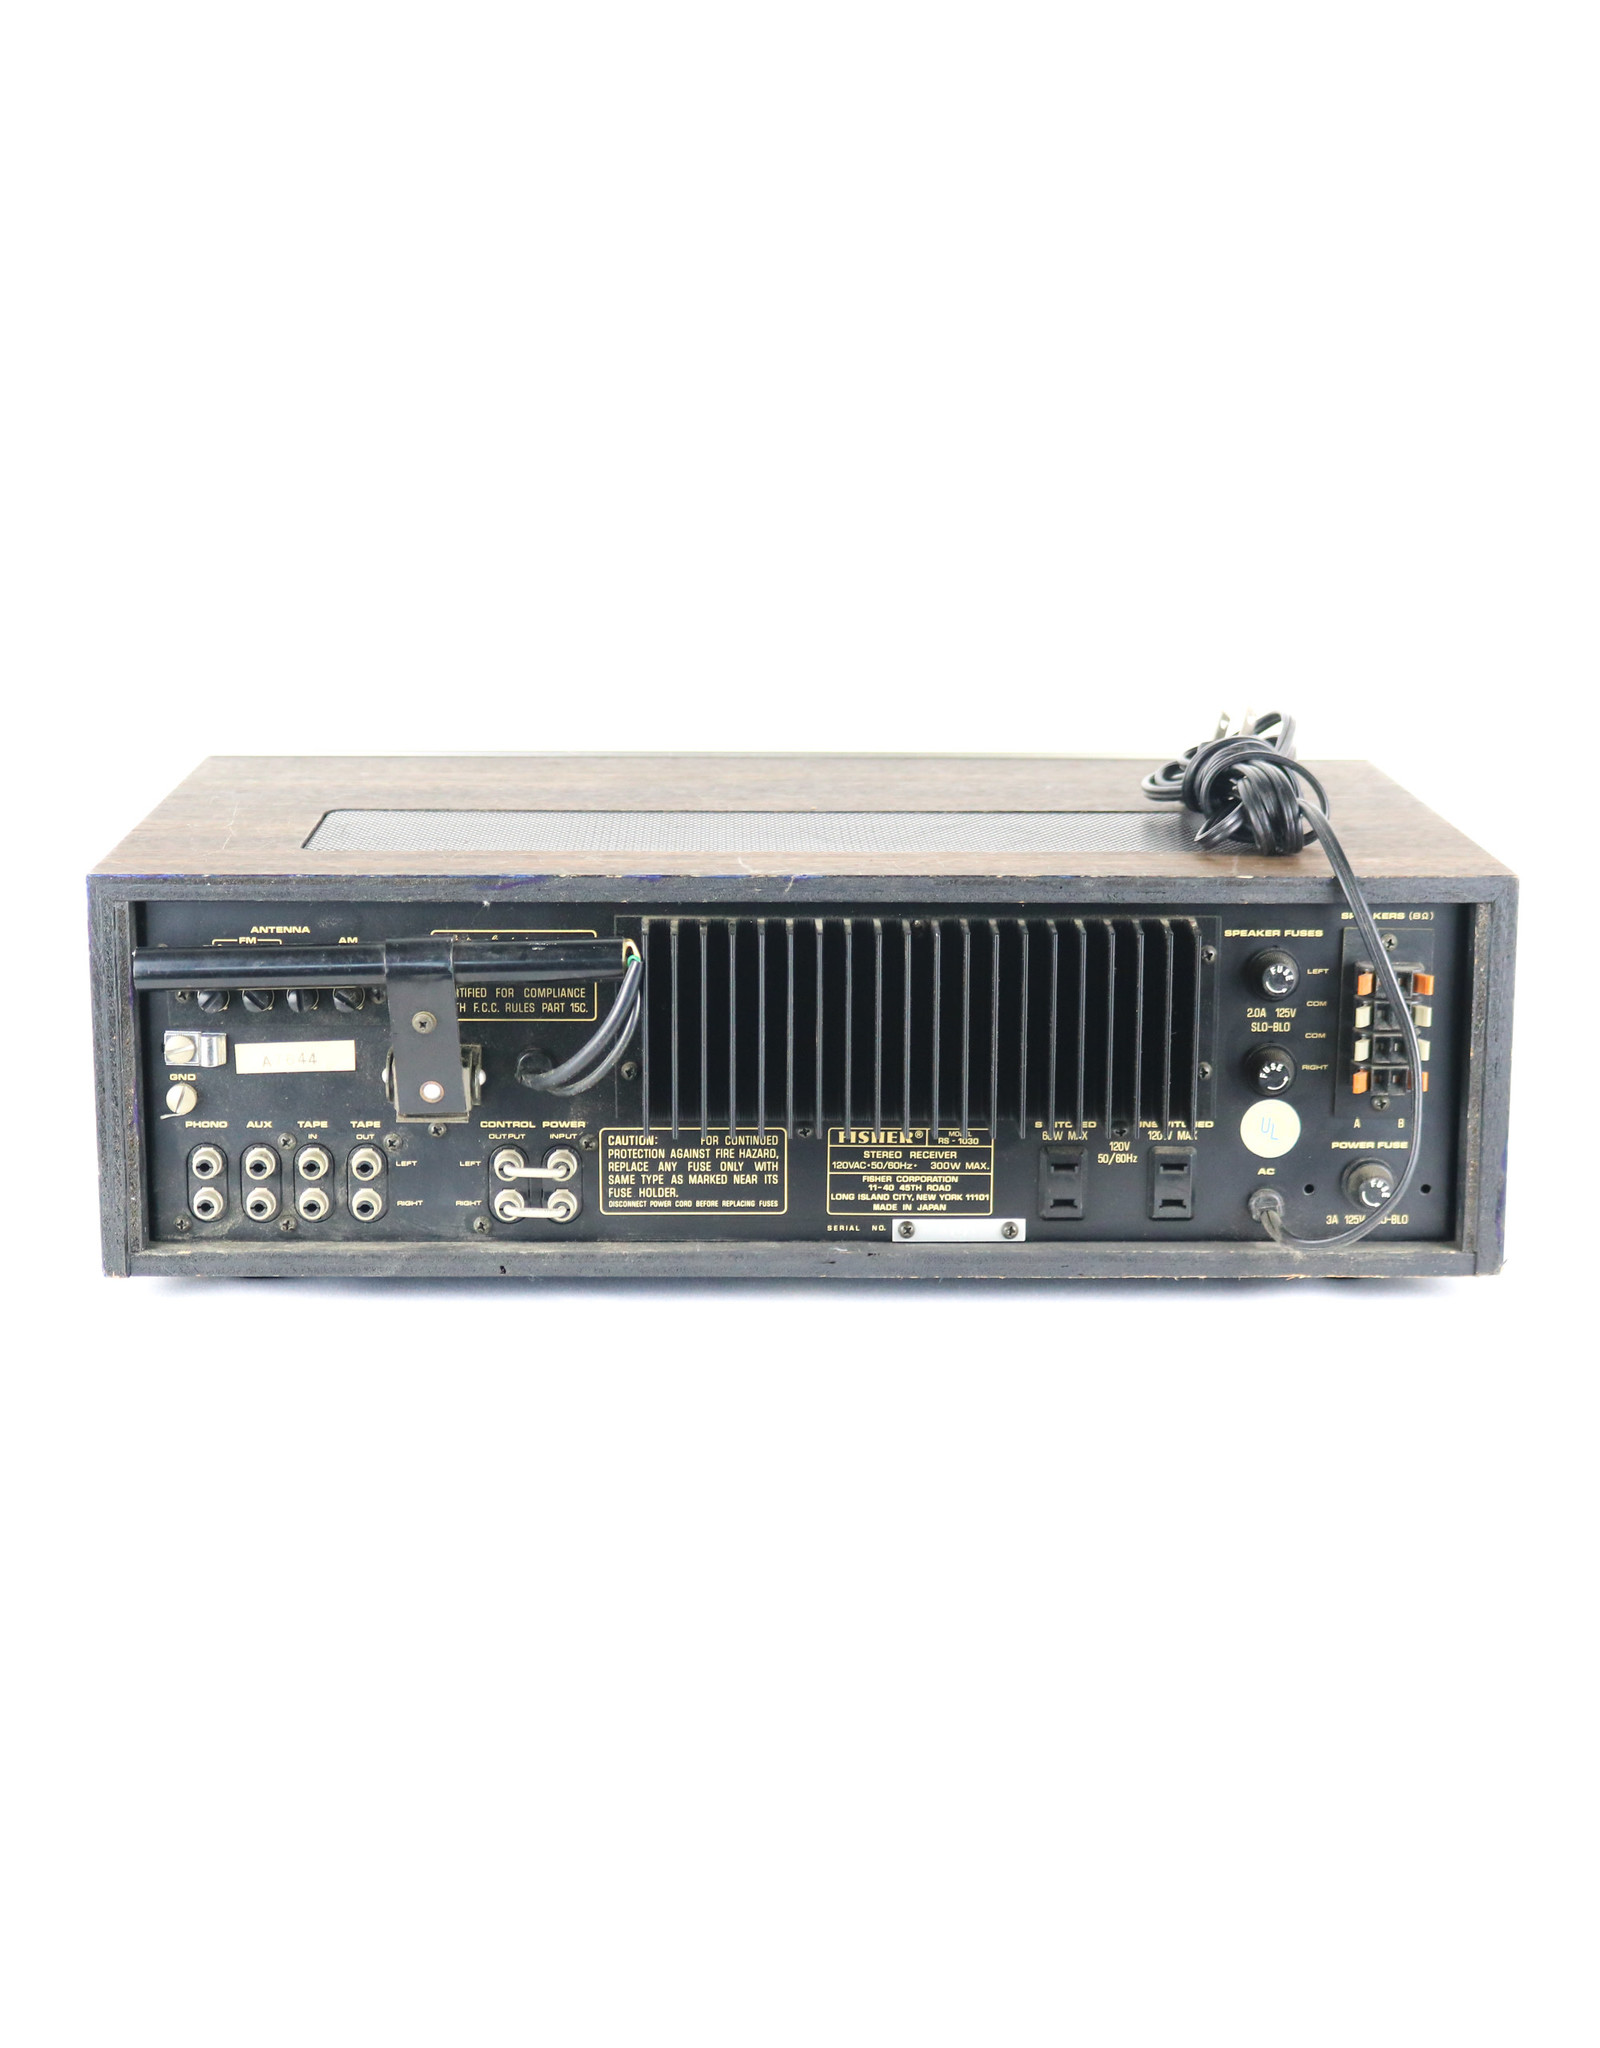 Fisher Fisher RS-1030 Receiver USED